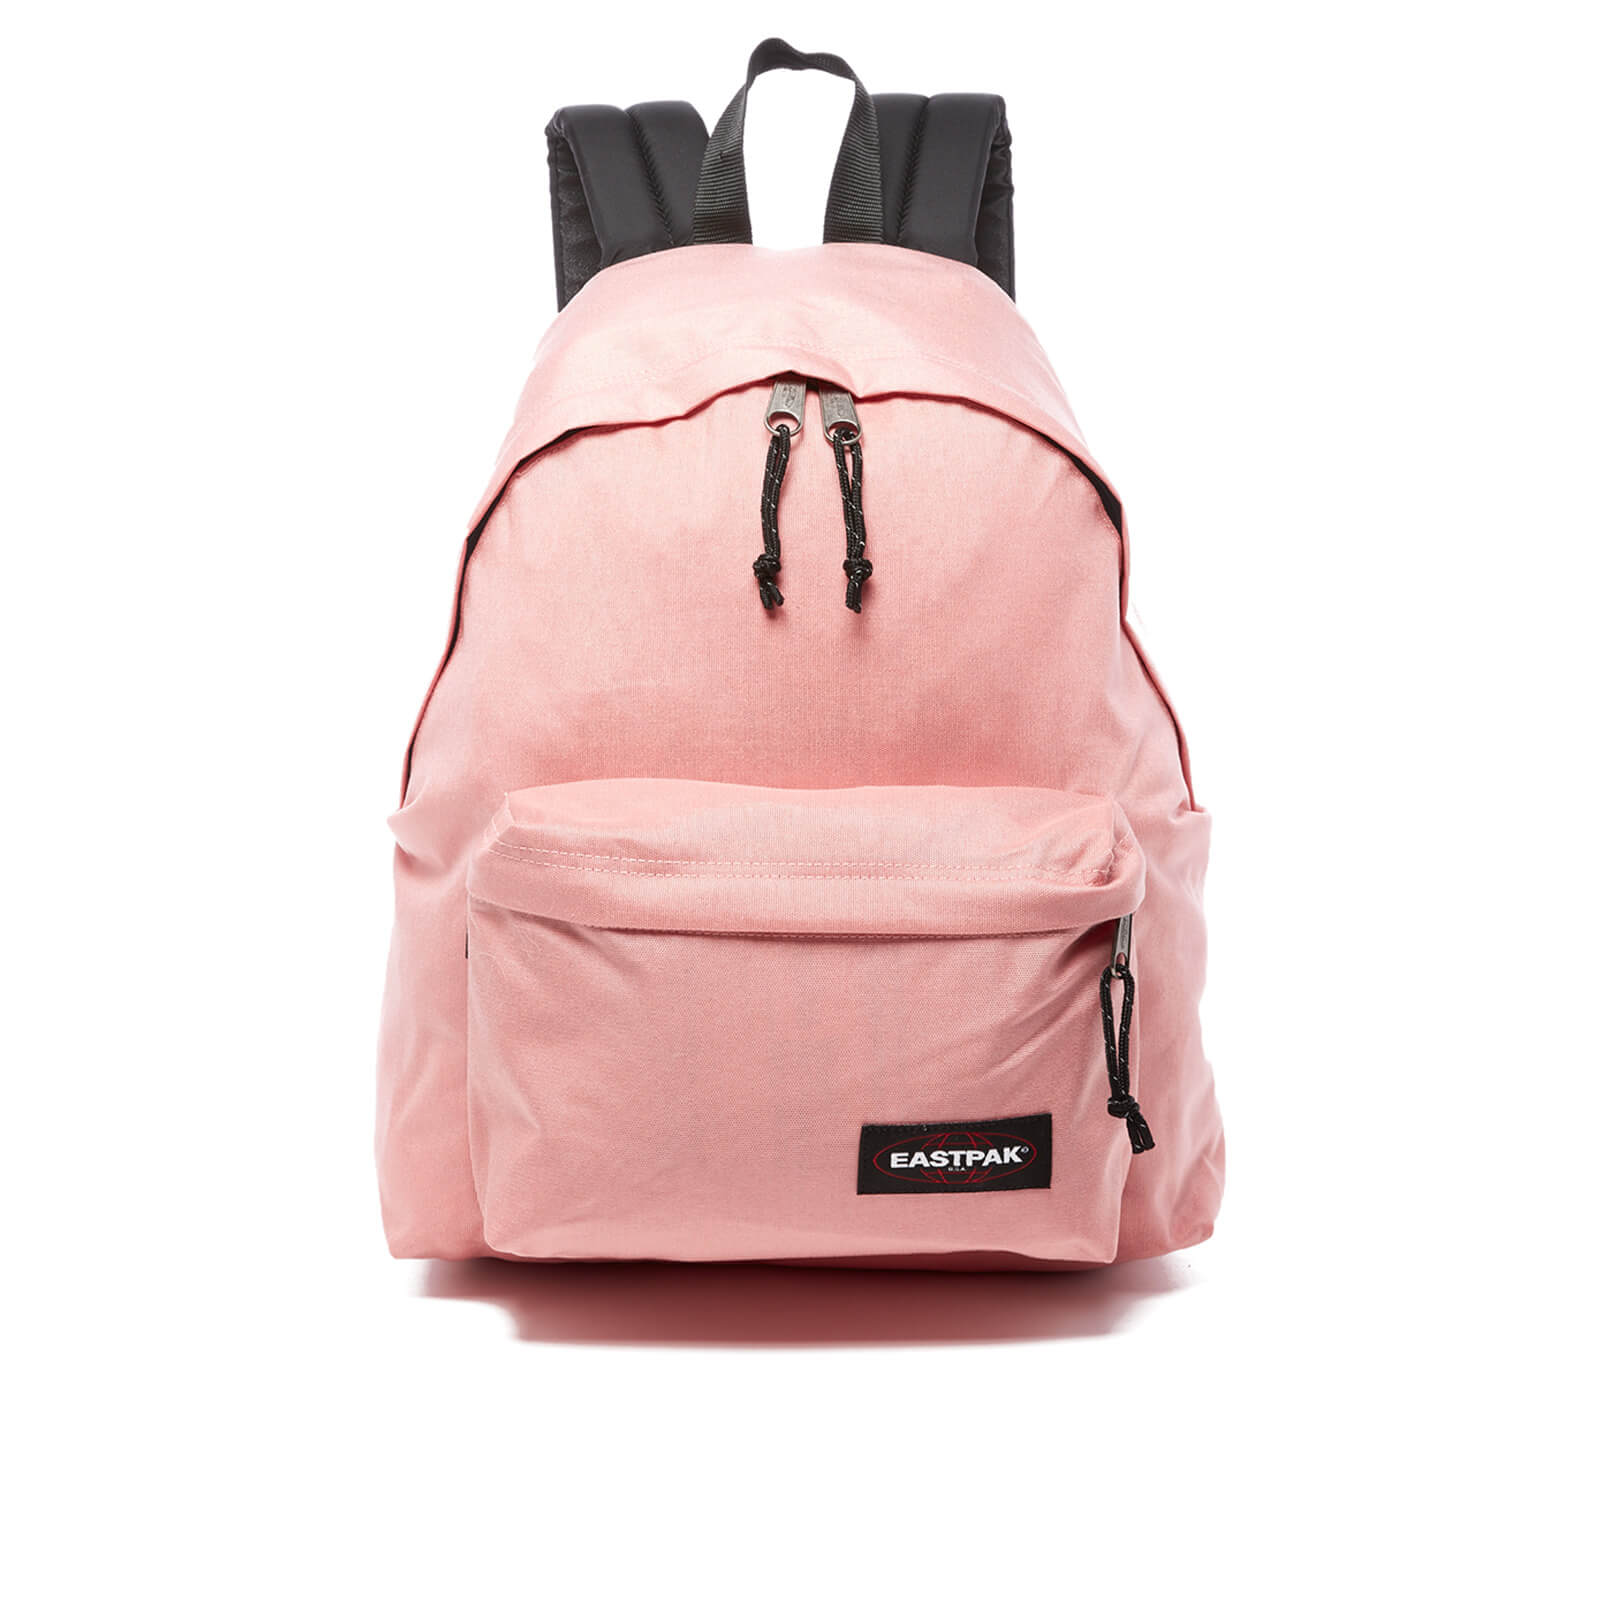 05163a8edc6b Eastpak Padded Pak r Backpack - Random Smile Pink Womens Accessories ...